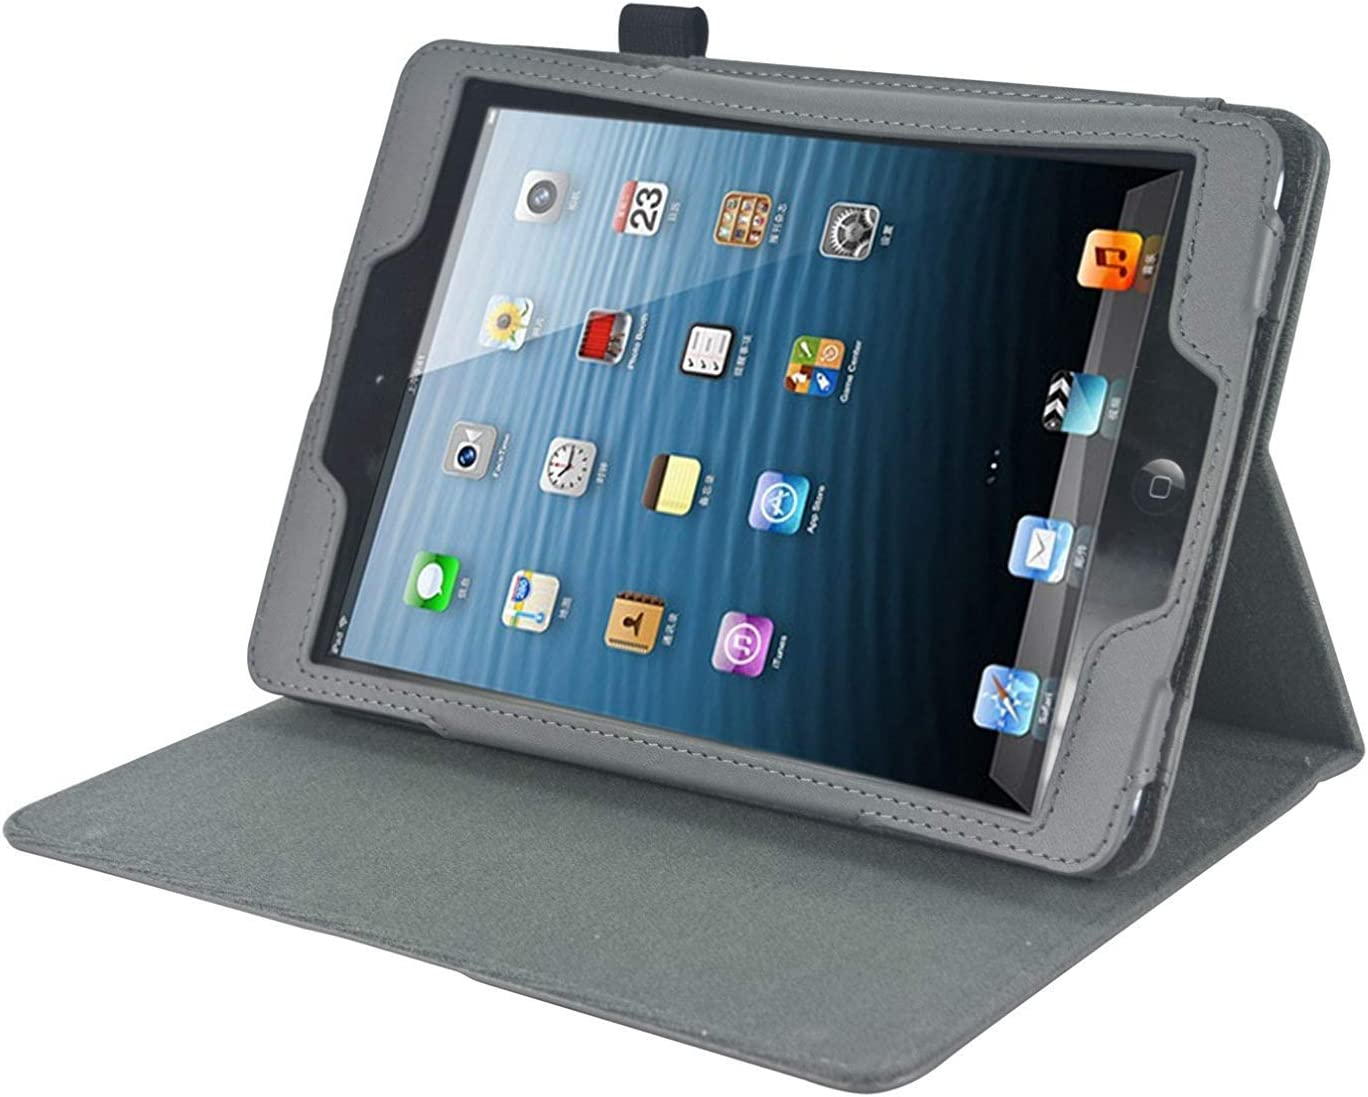 Navitech Grey Frontier Series Fitted Tablet Case with Headrest Mount Compatible with The Acer ICONIA B1-790-K732 7-Inch Tablet | Acer ICONIA B1-790-K017 7-Inch Tablet